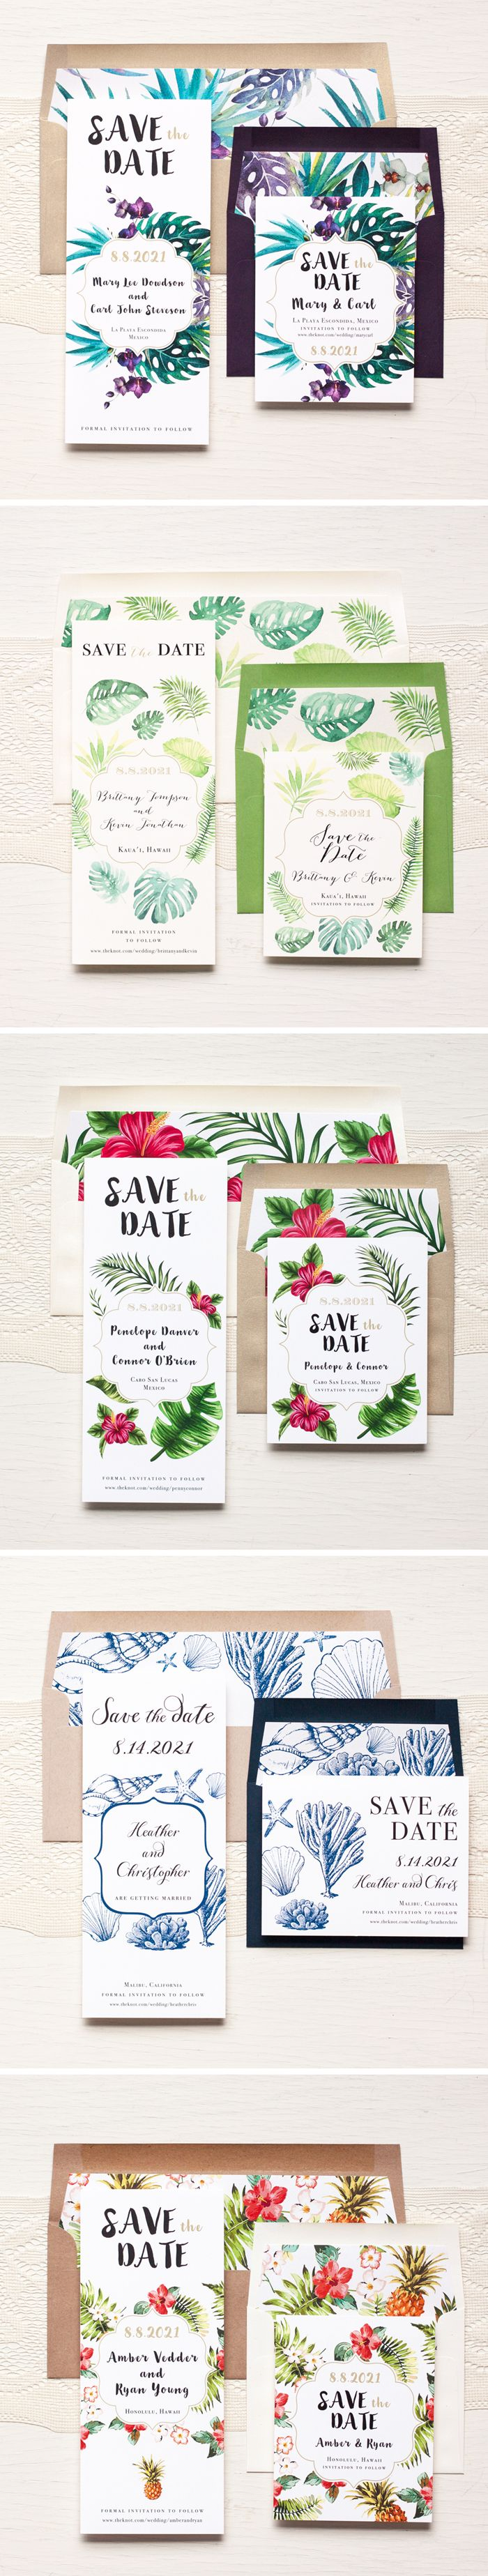 Aloha! Tropical Inspired Save The Dates